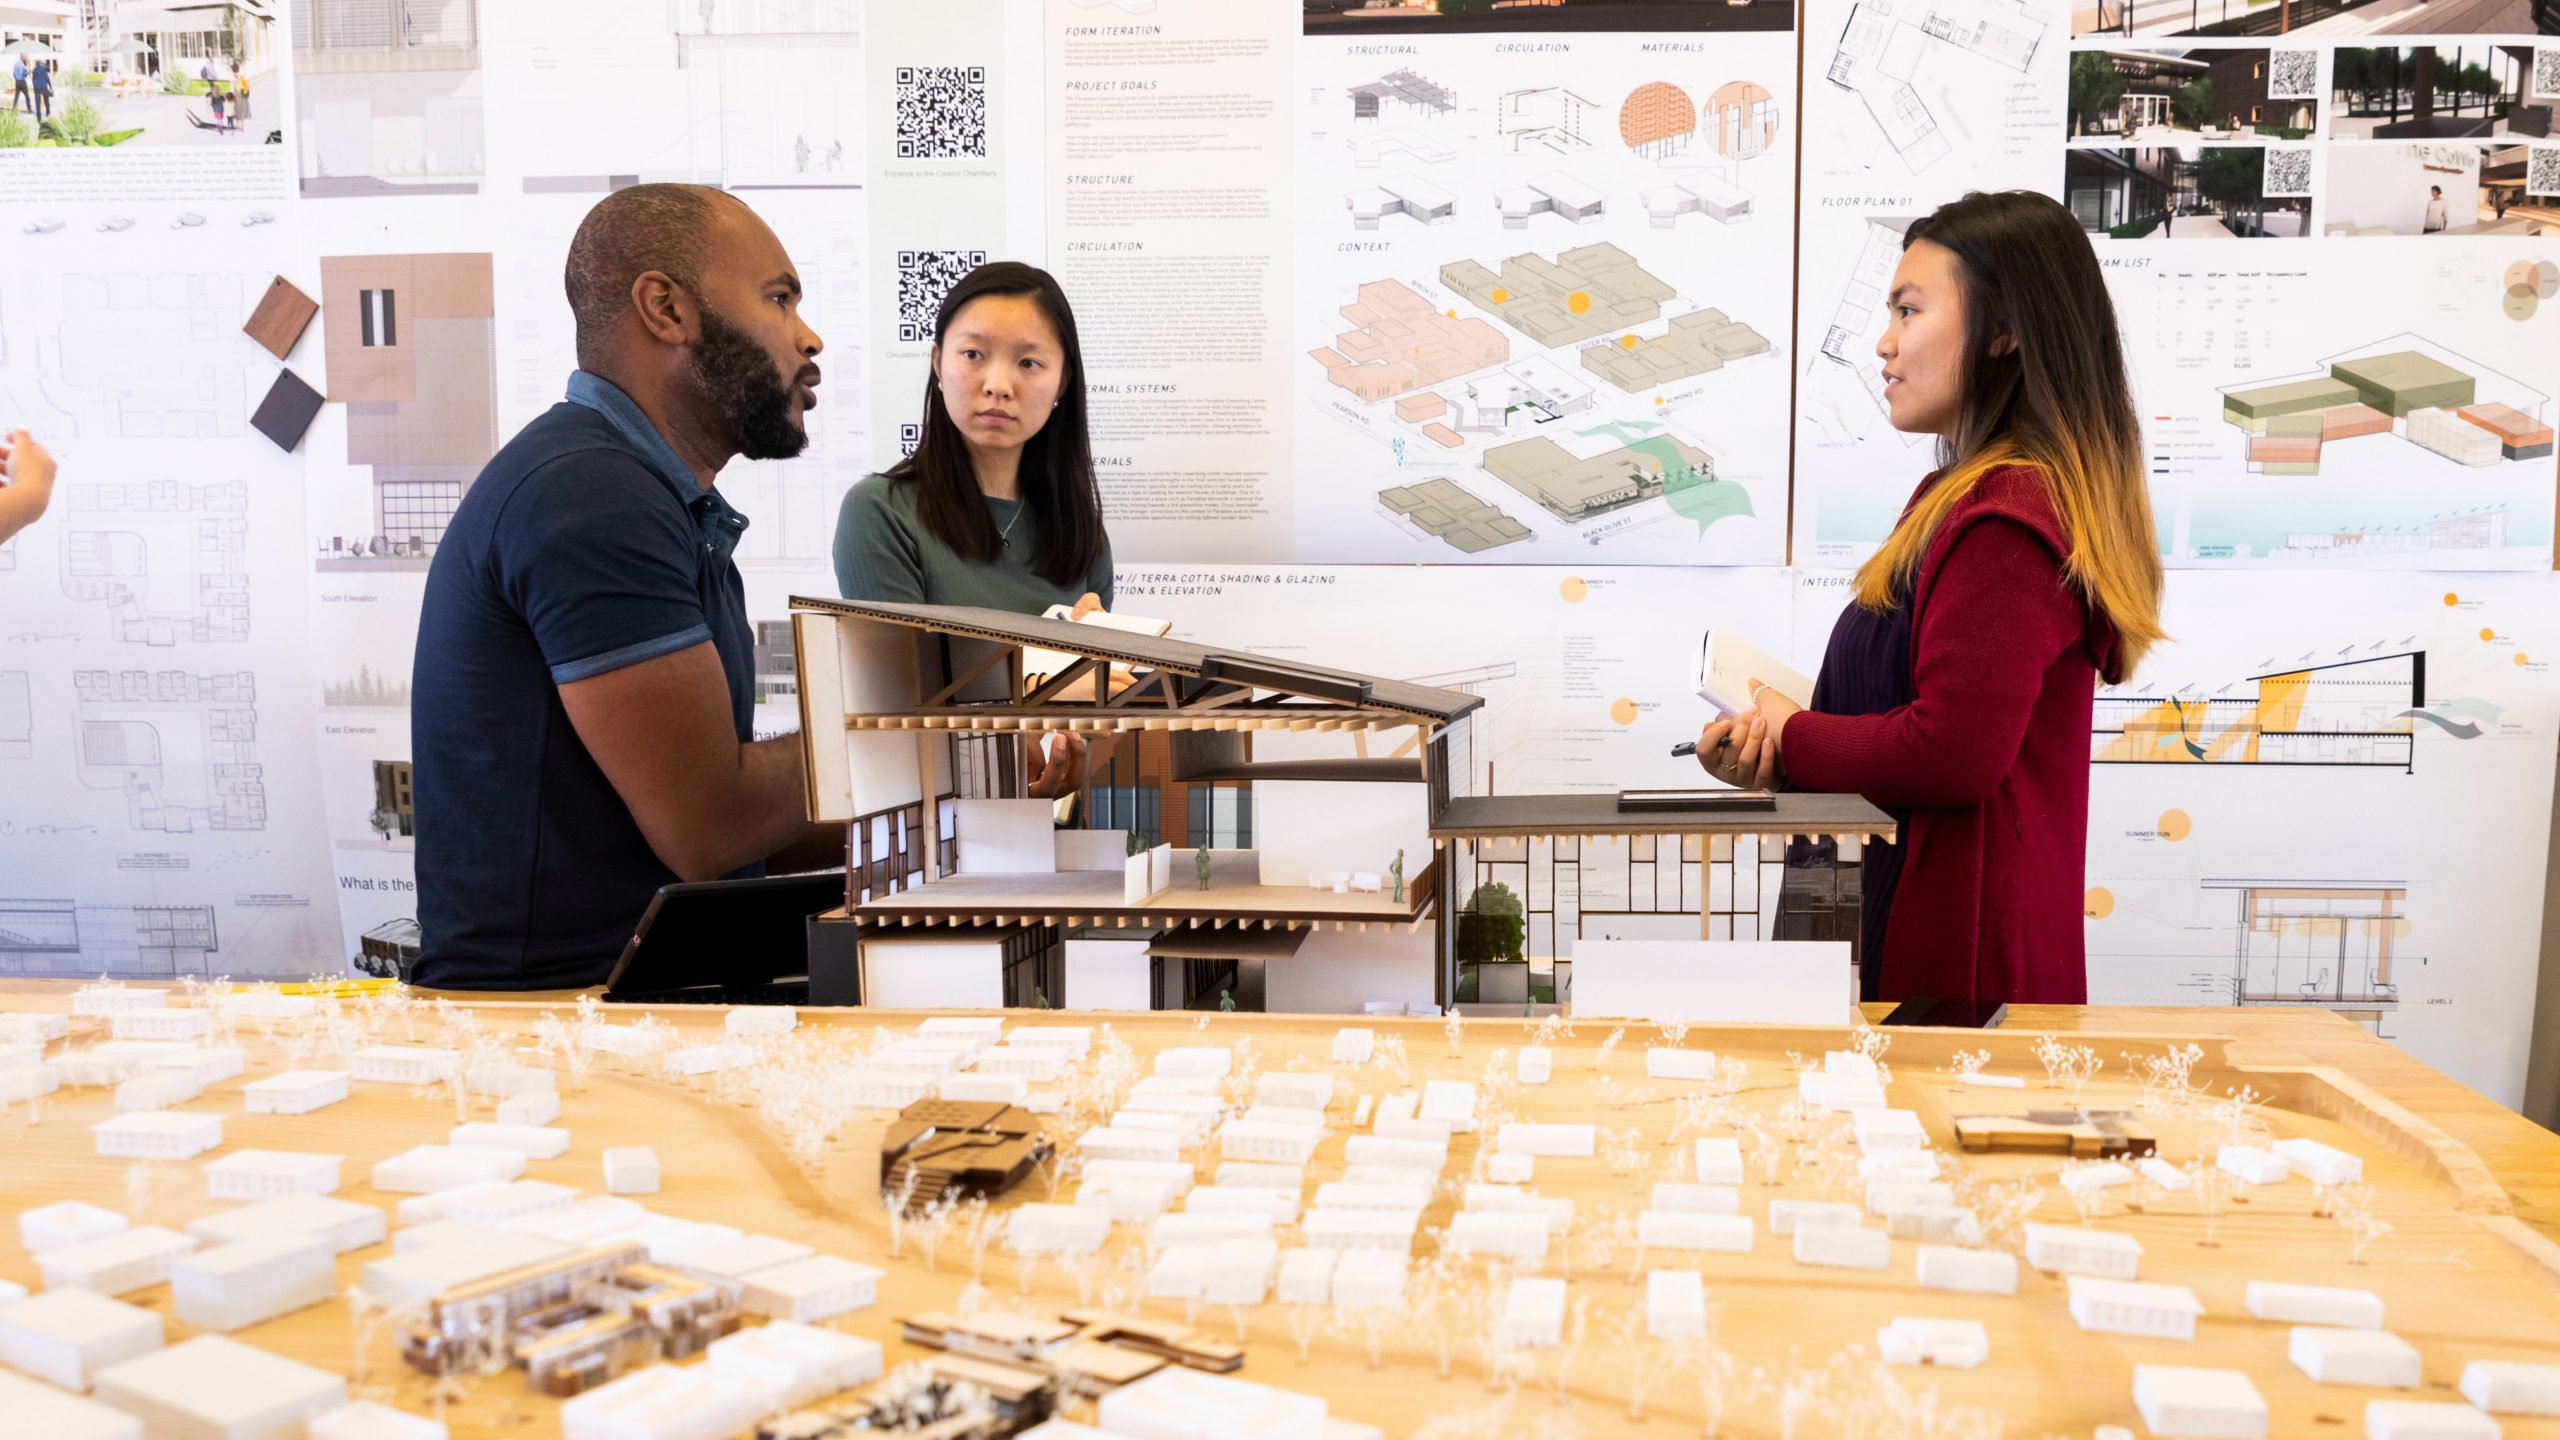 Faculty member Jermaine Washington speaks with two architecture students in front of their final design poster. Photo by Joe Johnston.